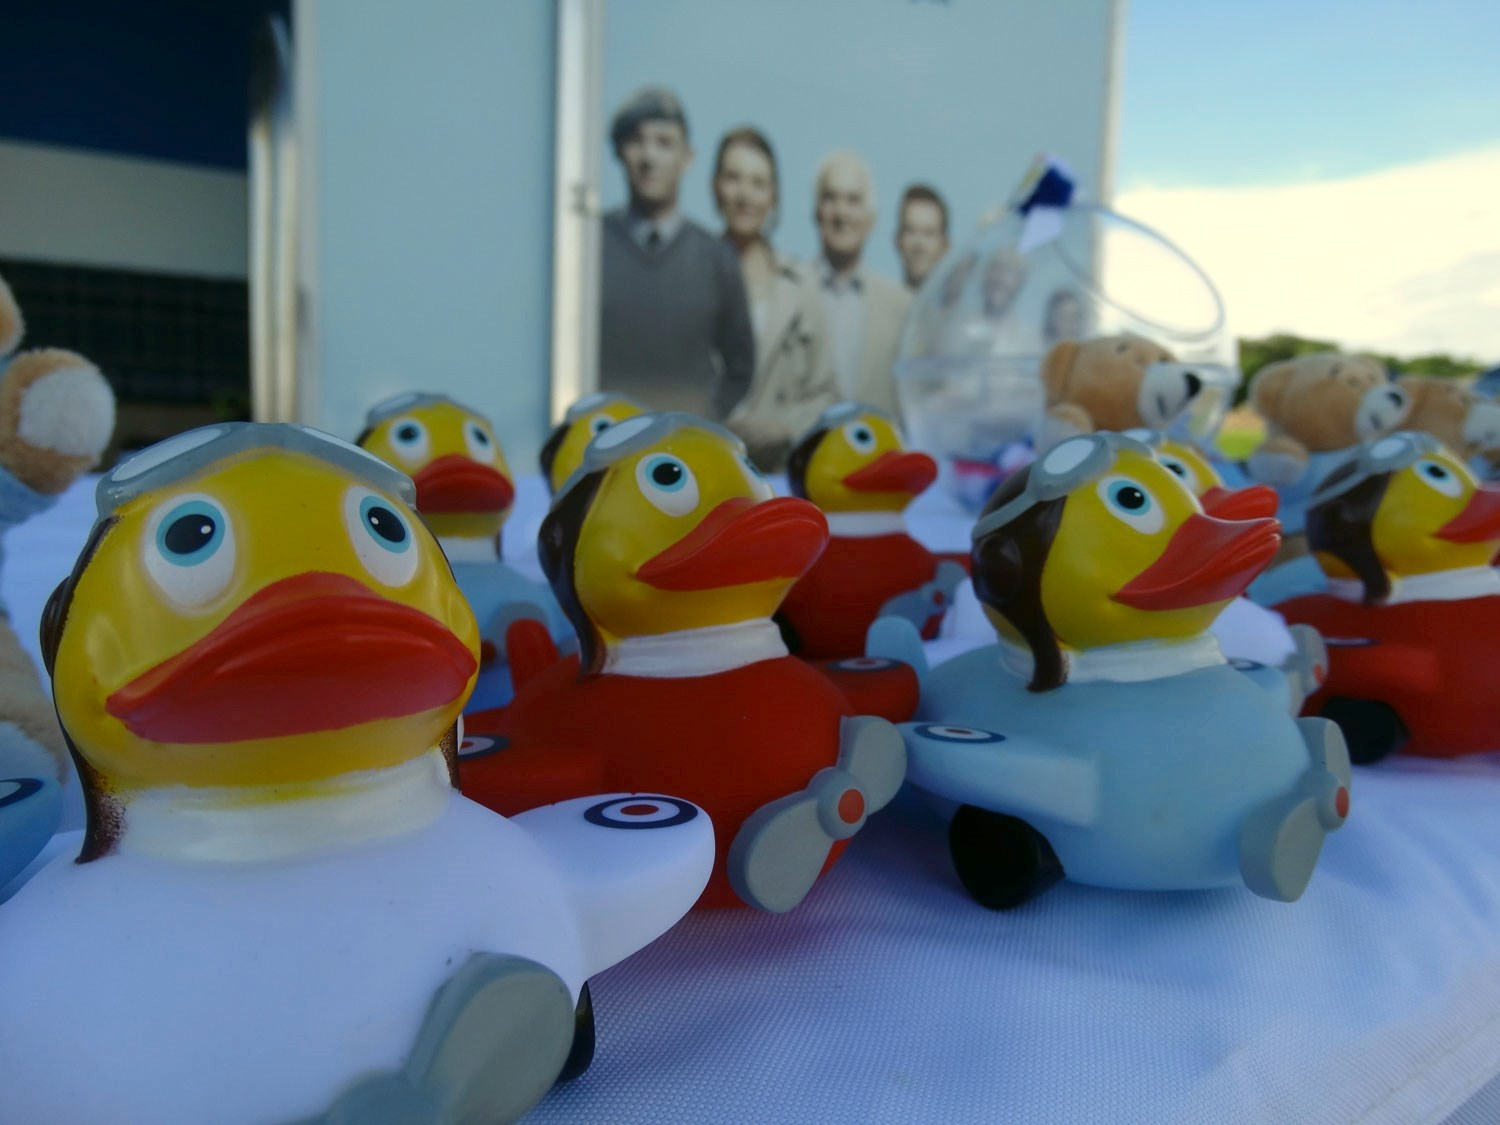 Ducks on parade from the Royal Air Force Association at Scotland's National Airshow.